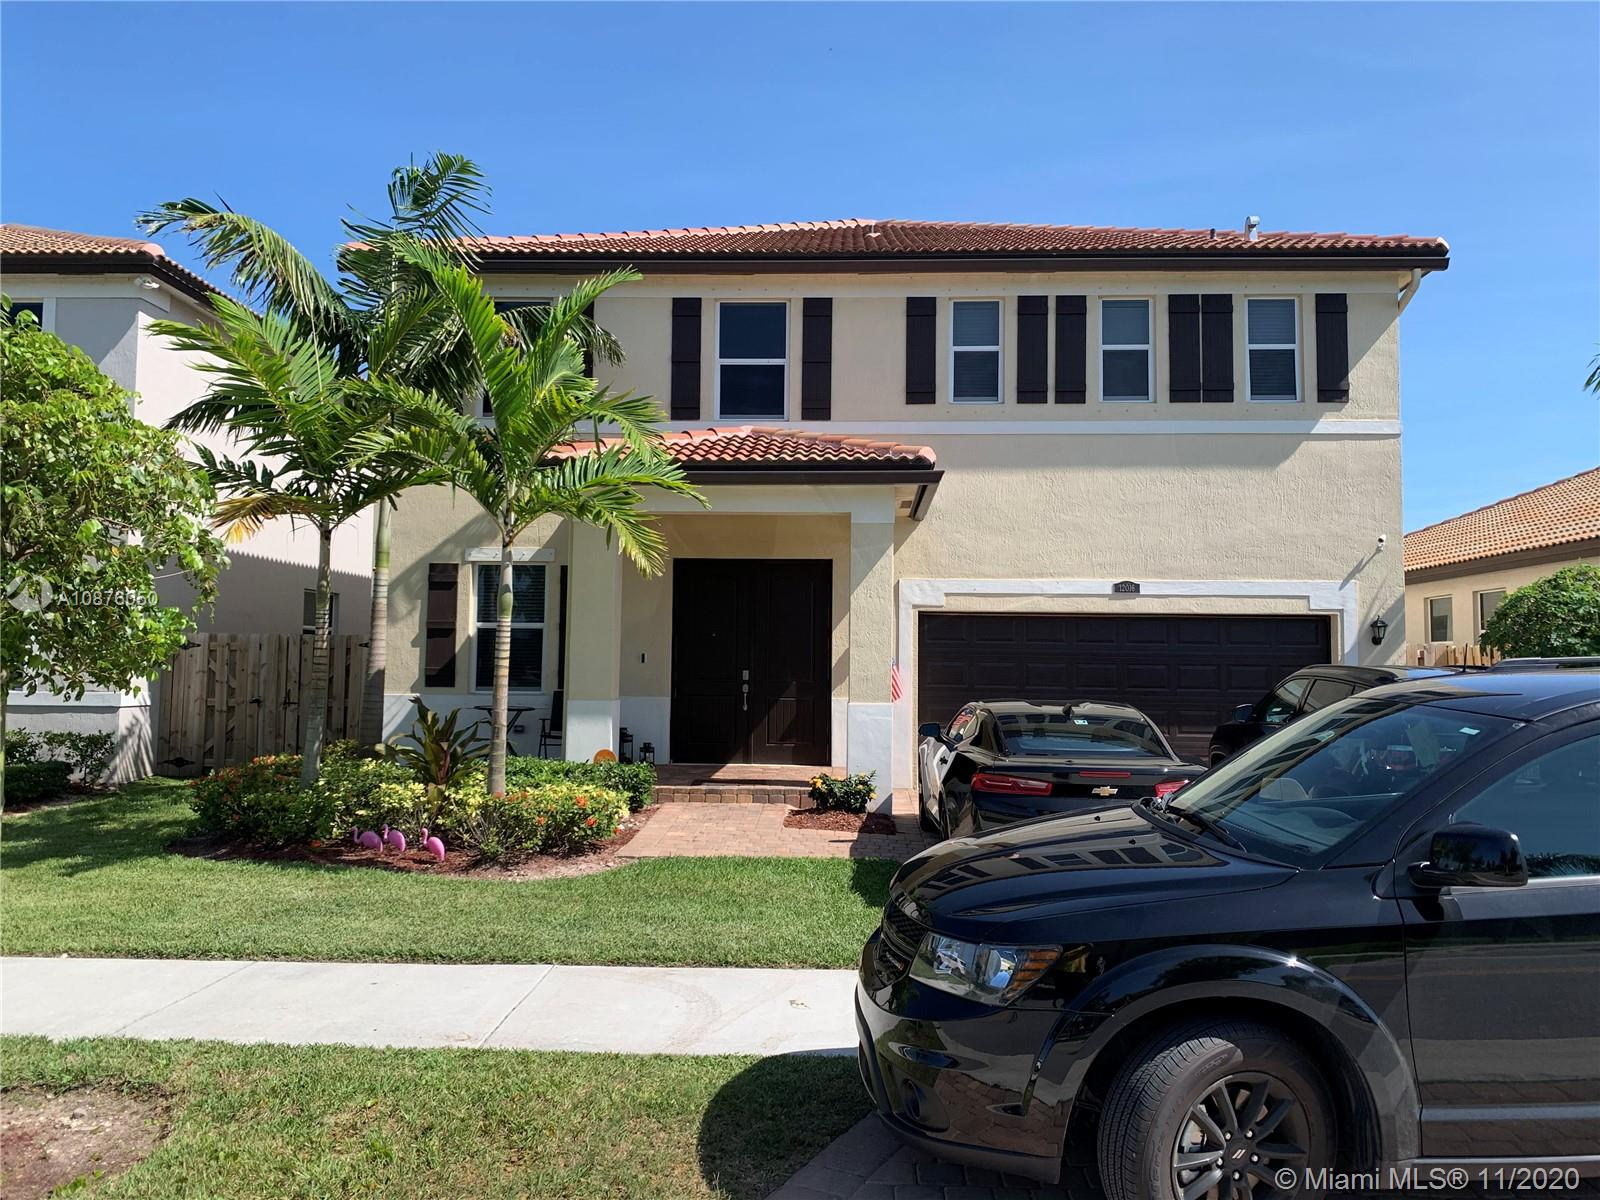 12016 SW 255th St Property Photo - Homestead, FL real estate listing